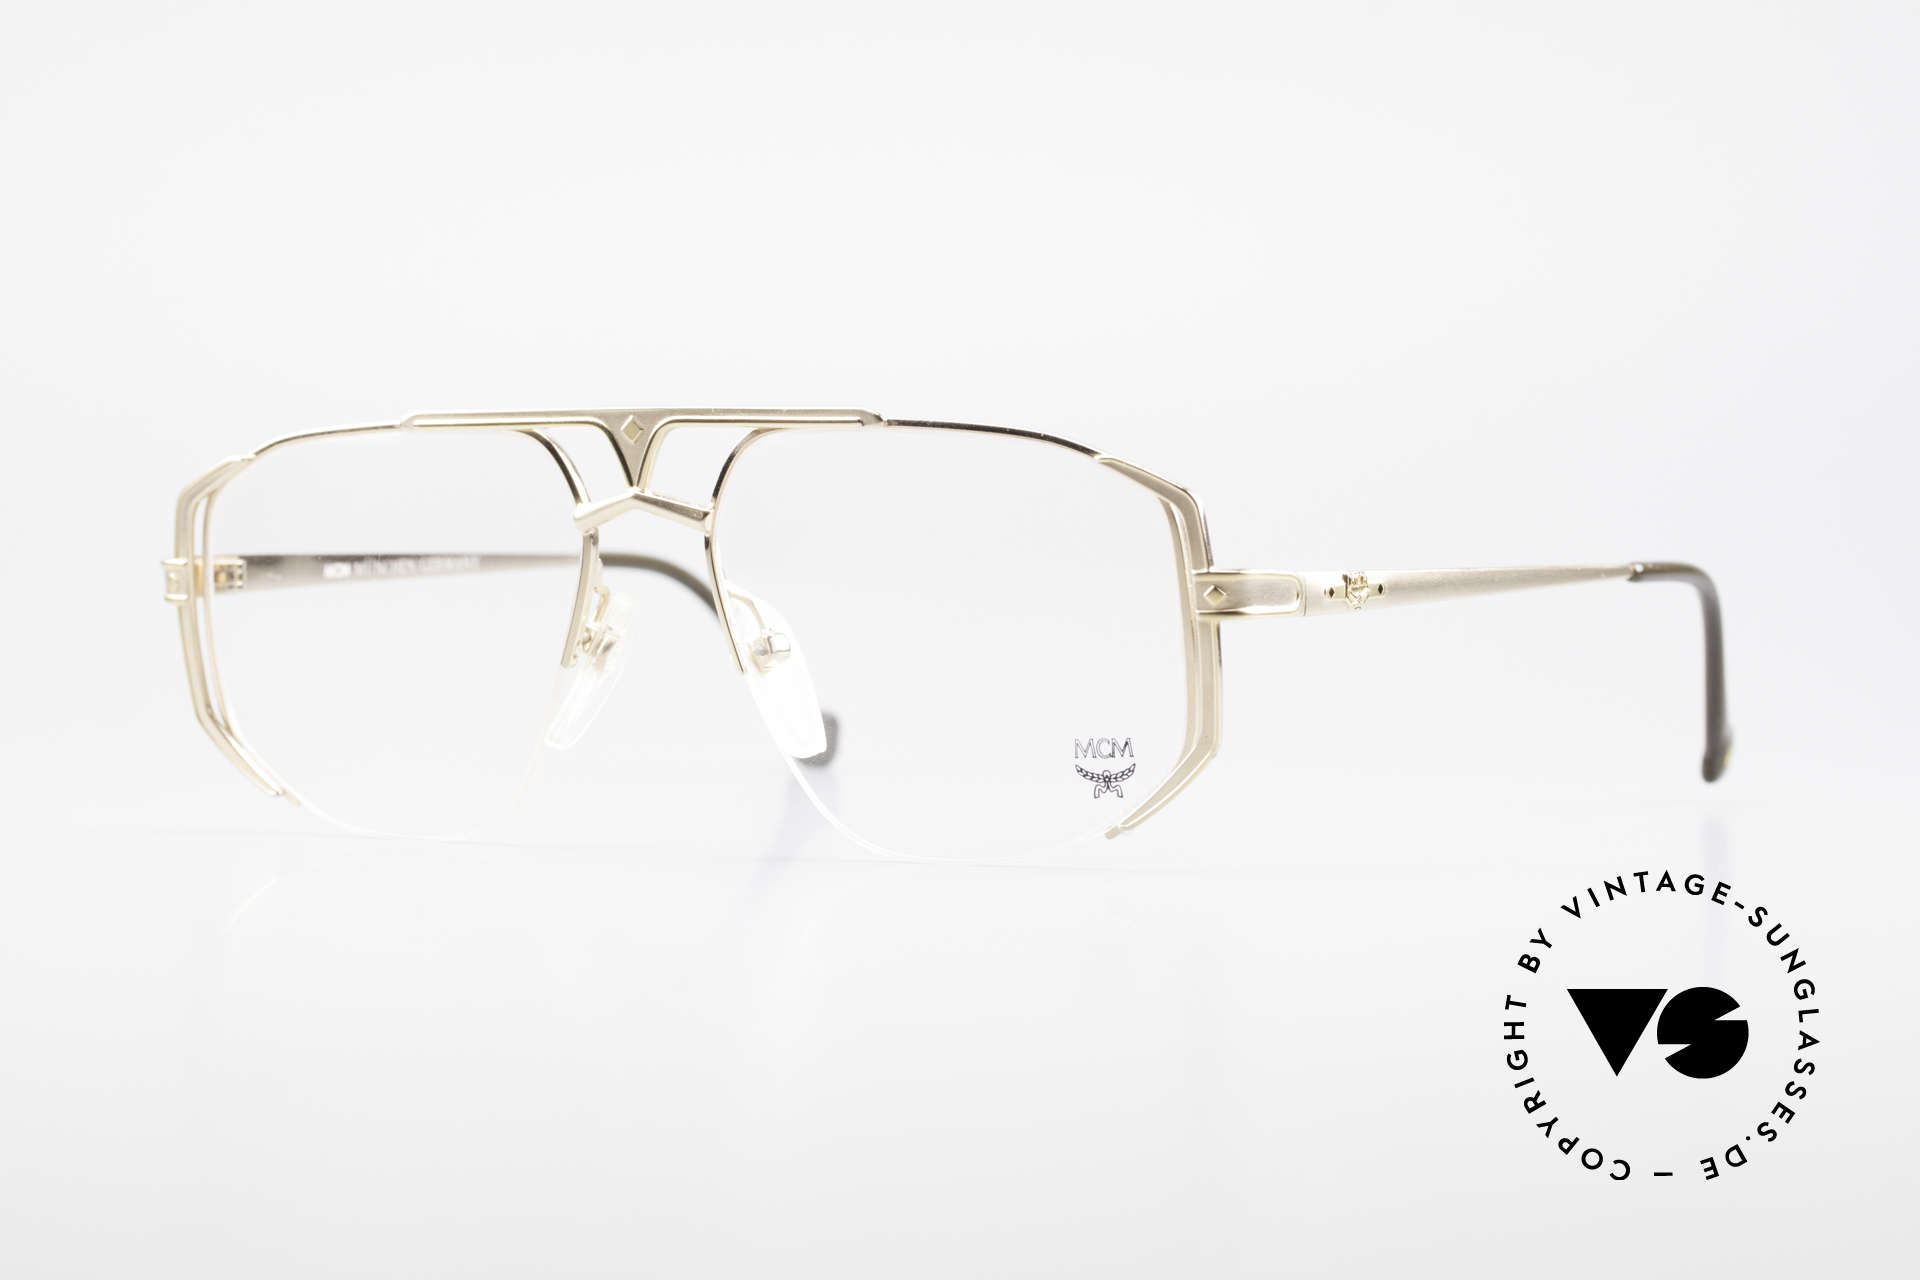 MCM München 5 Titanium Eyeglasses Large, LARGE designer glasses by MCM from the early 1990's, Made for Men